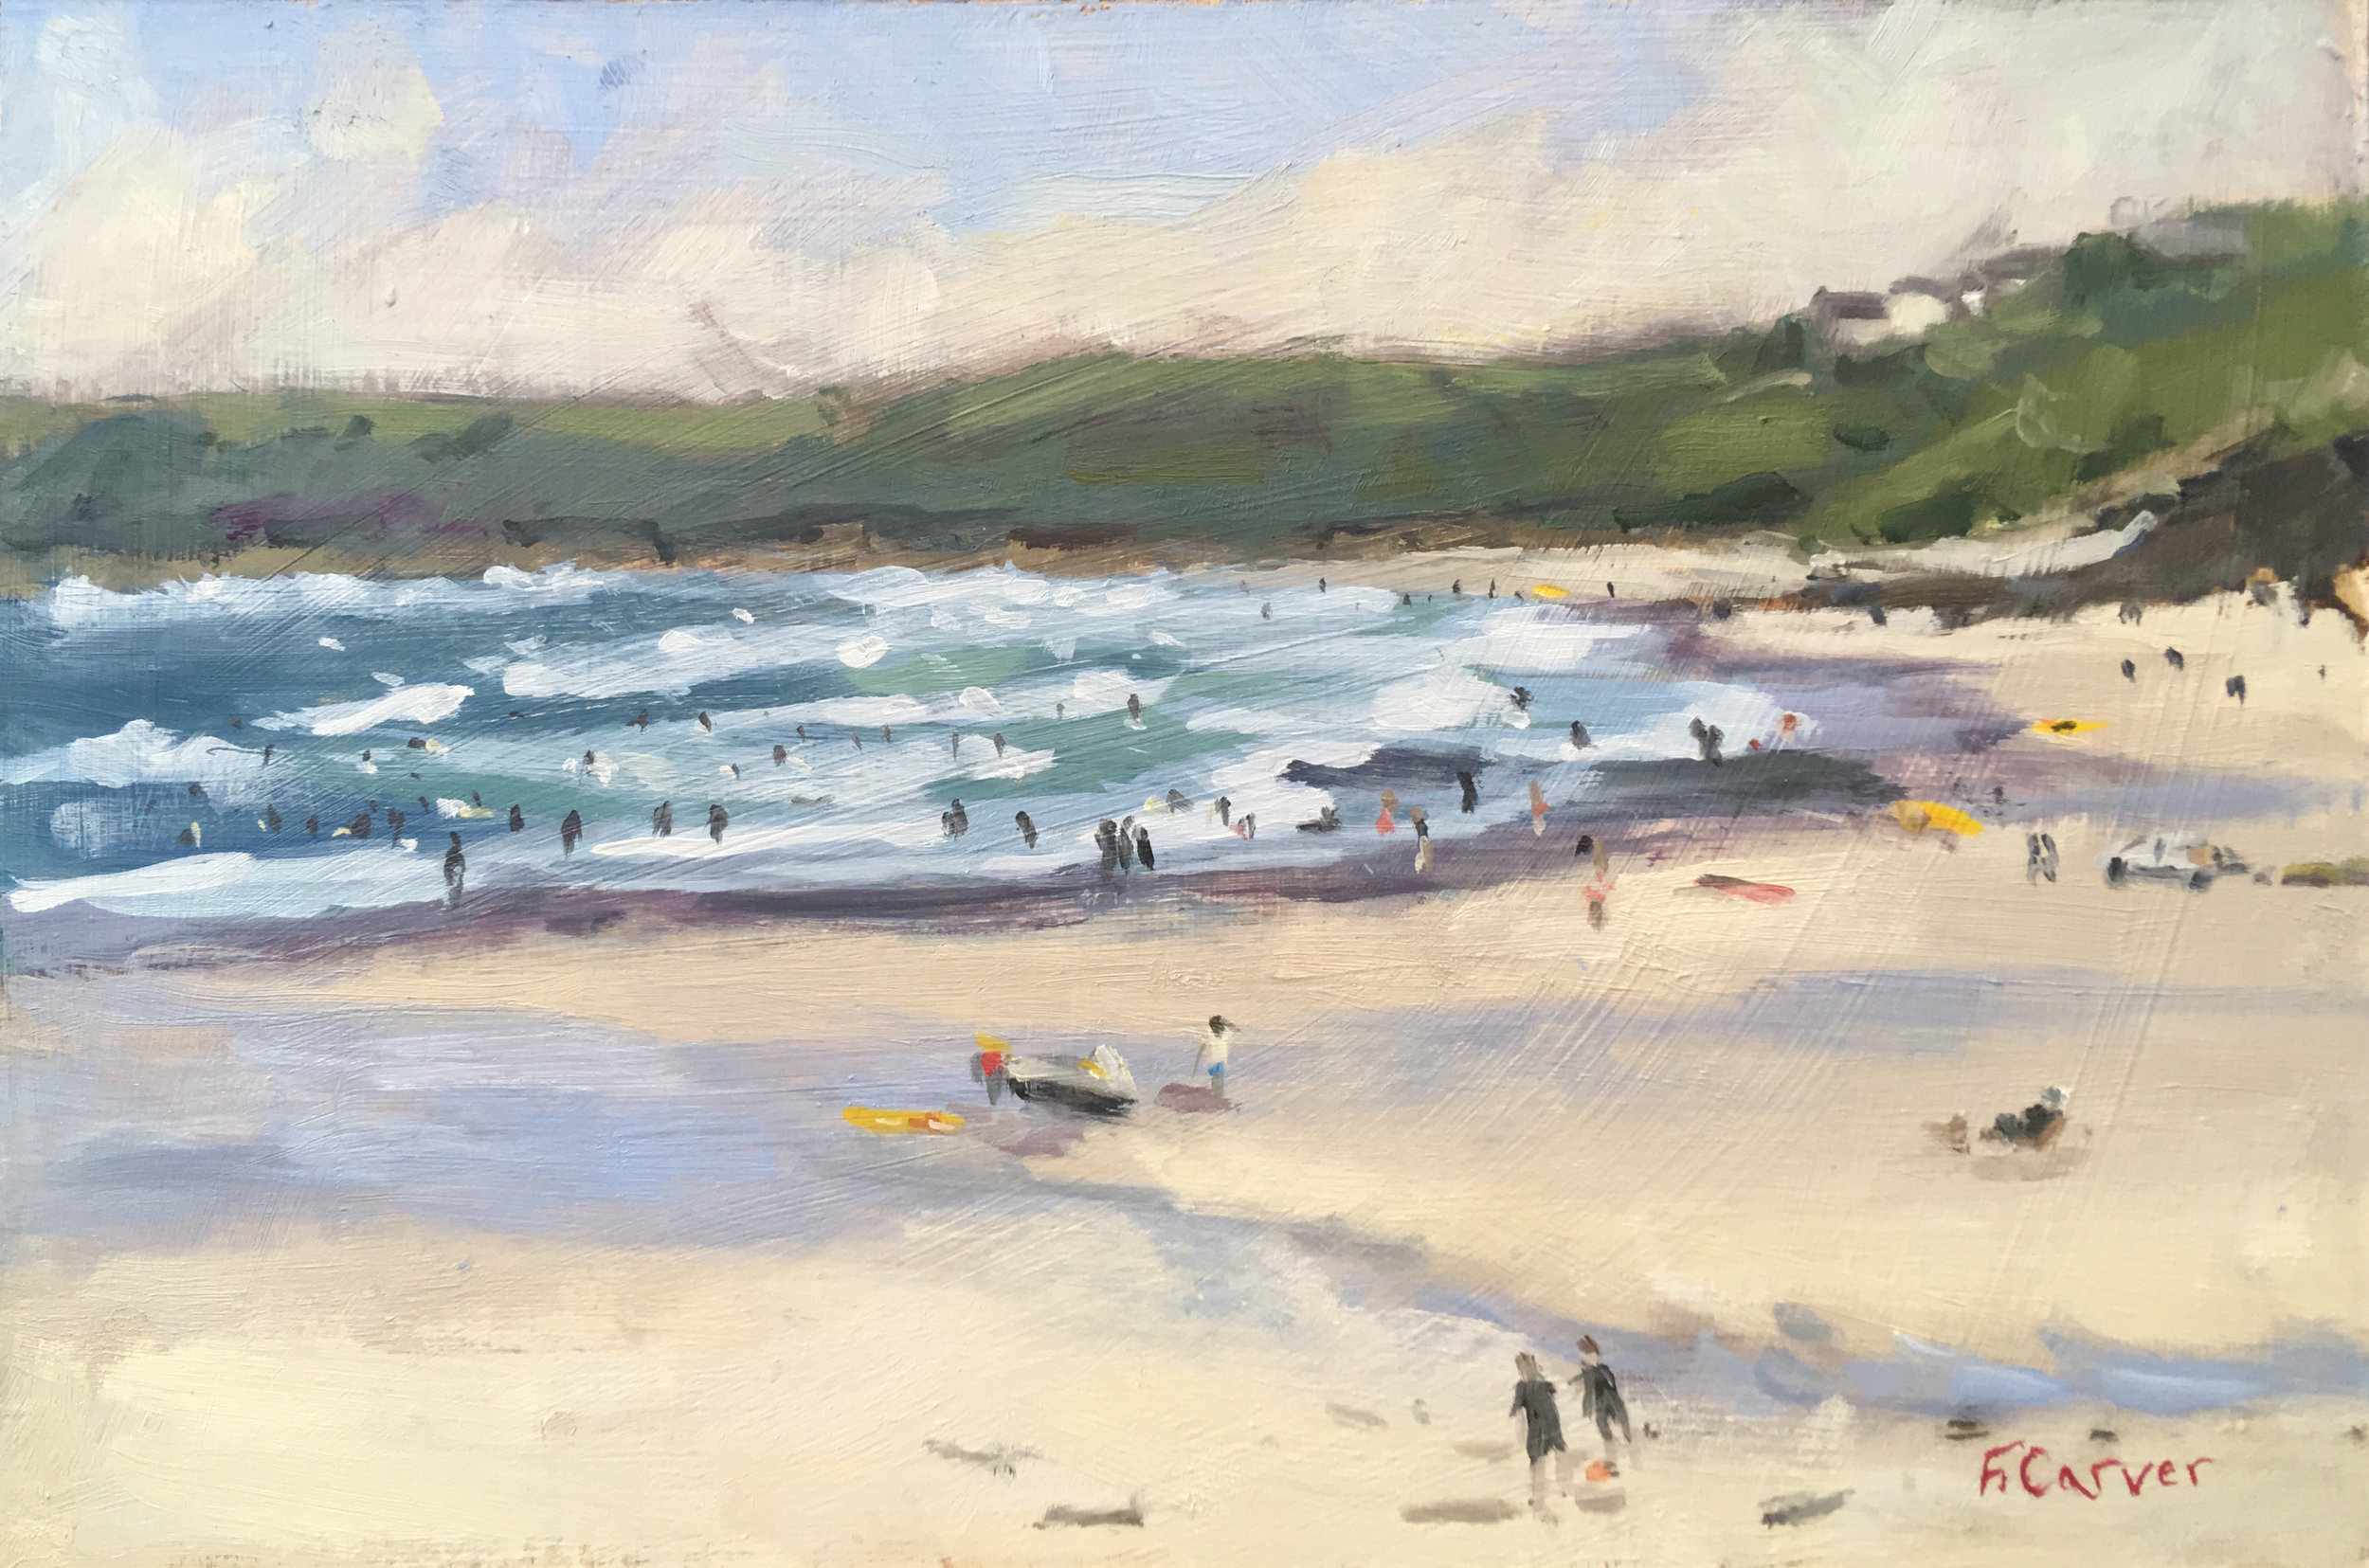 'Surfing at Sennen'  Available at Wychwood Art Gallery